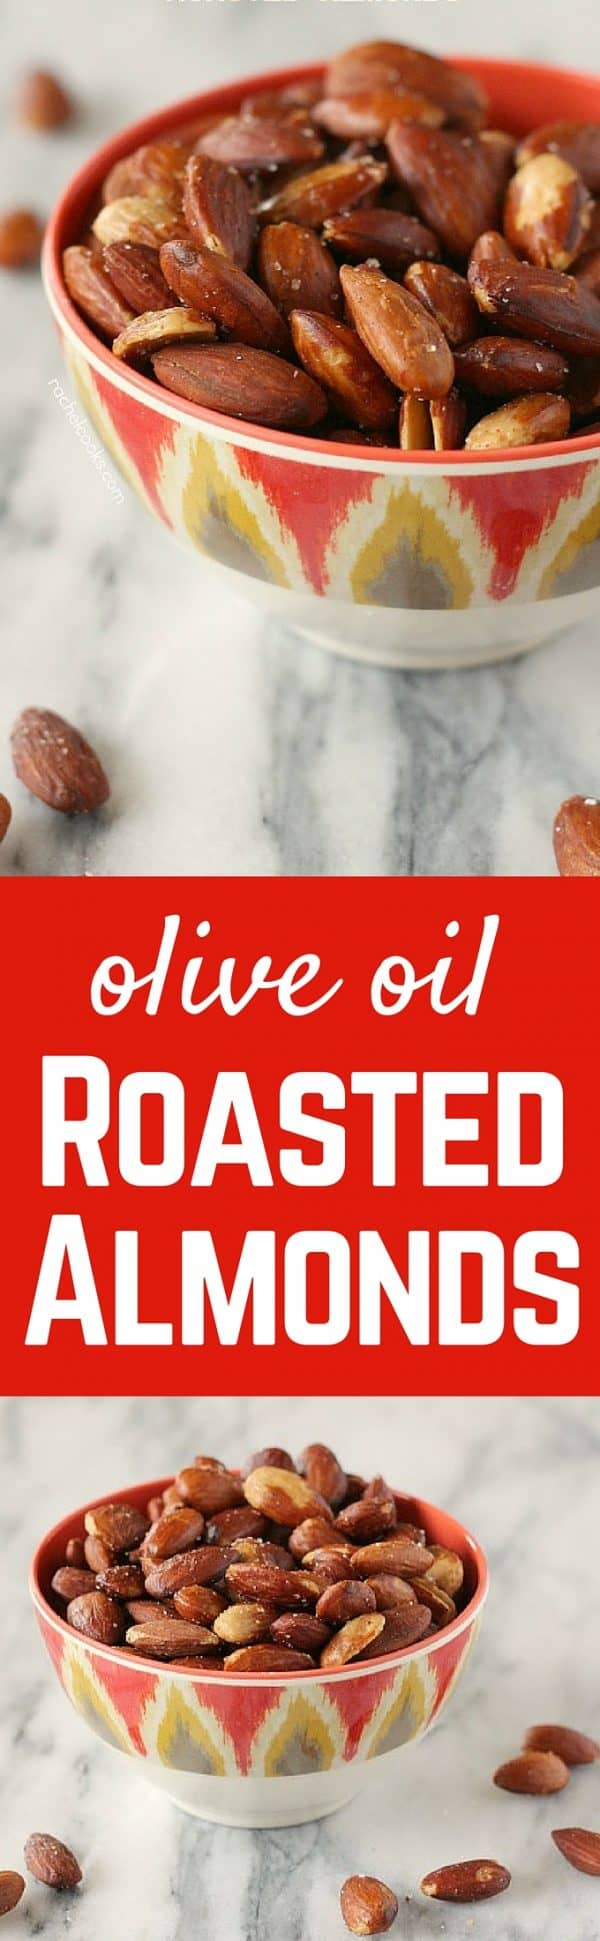 These olive oil roasted almonds are a snack you can feel good about -- plus they taste amazing! You won't be able to stop snacking on them. Get the recipe on RachelCooks.com!